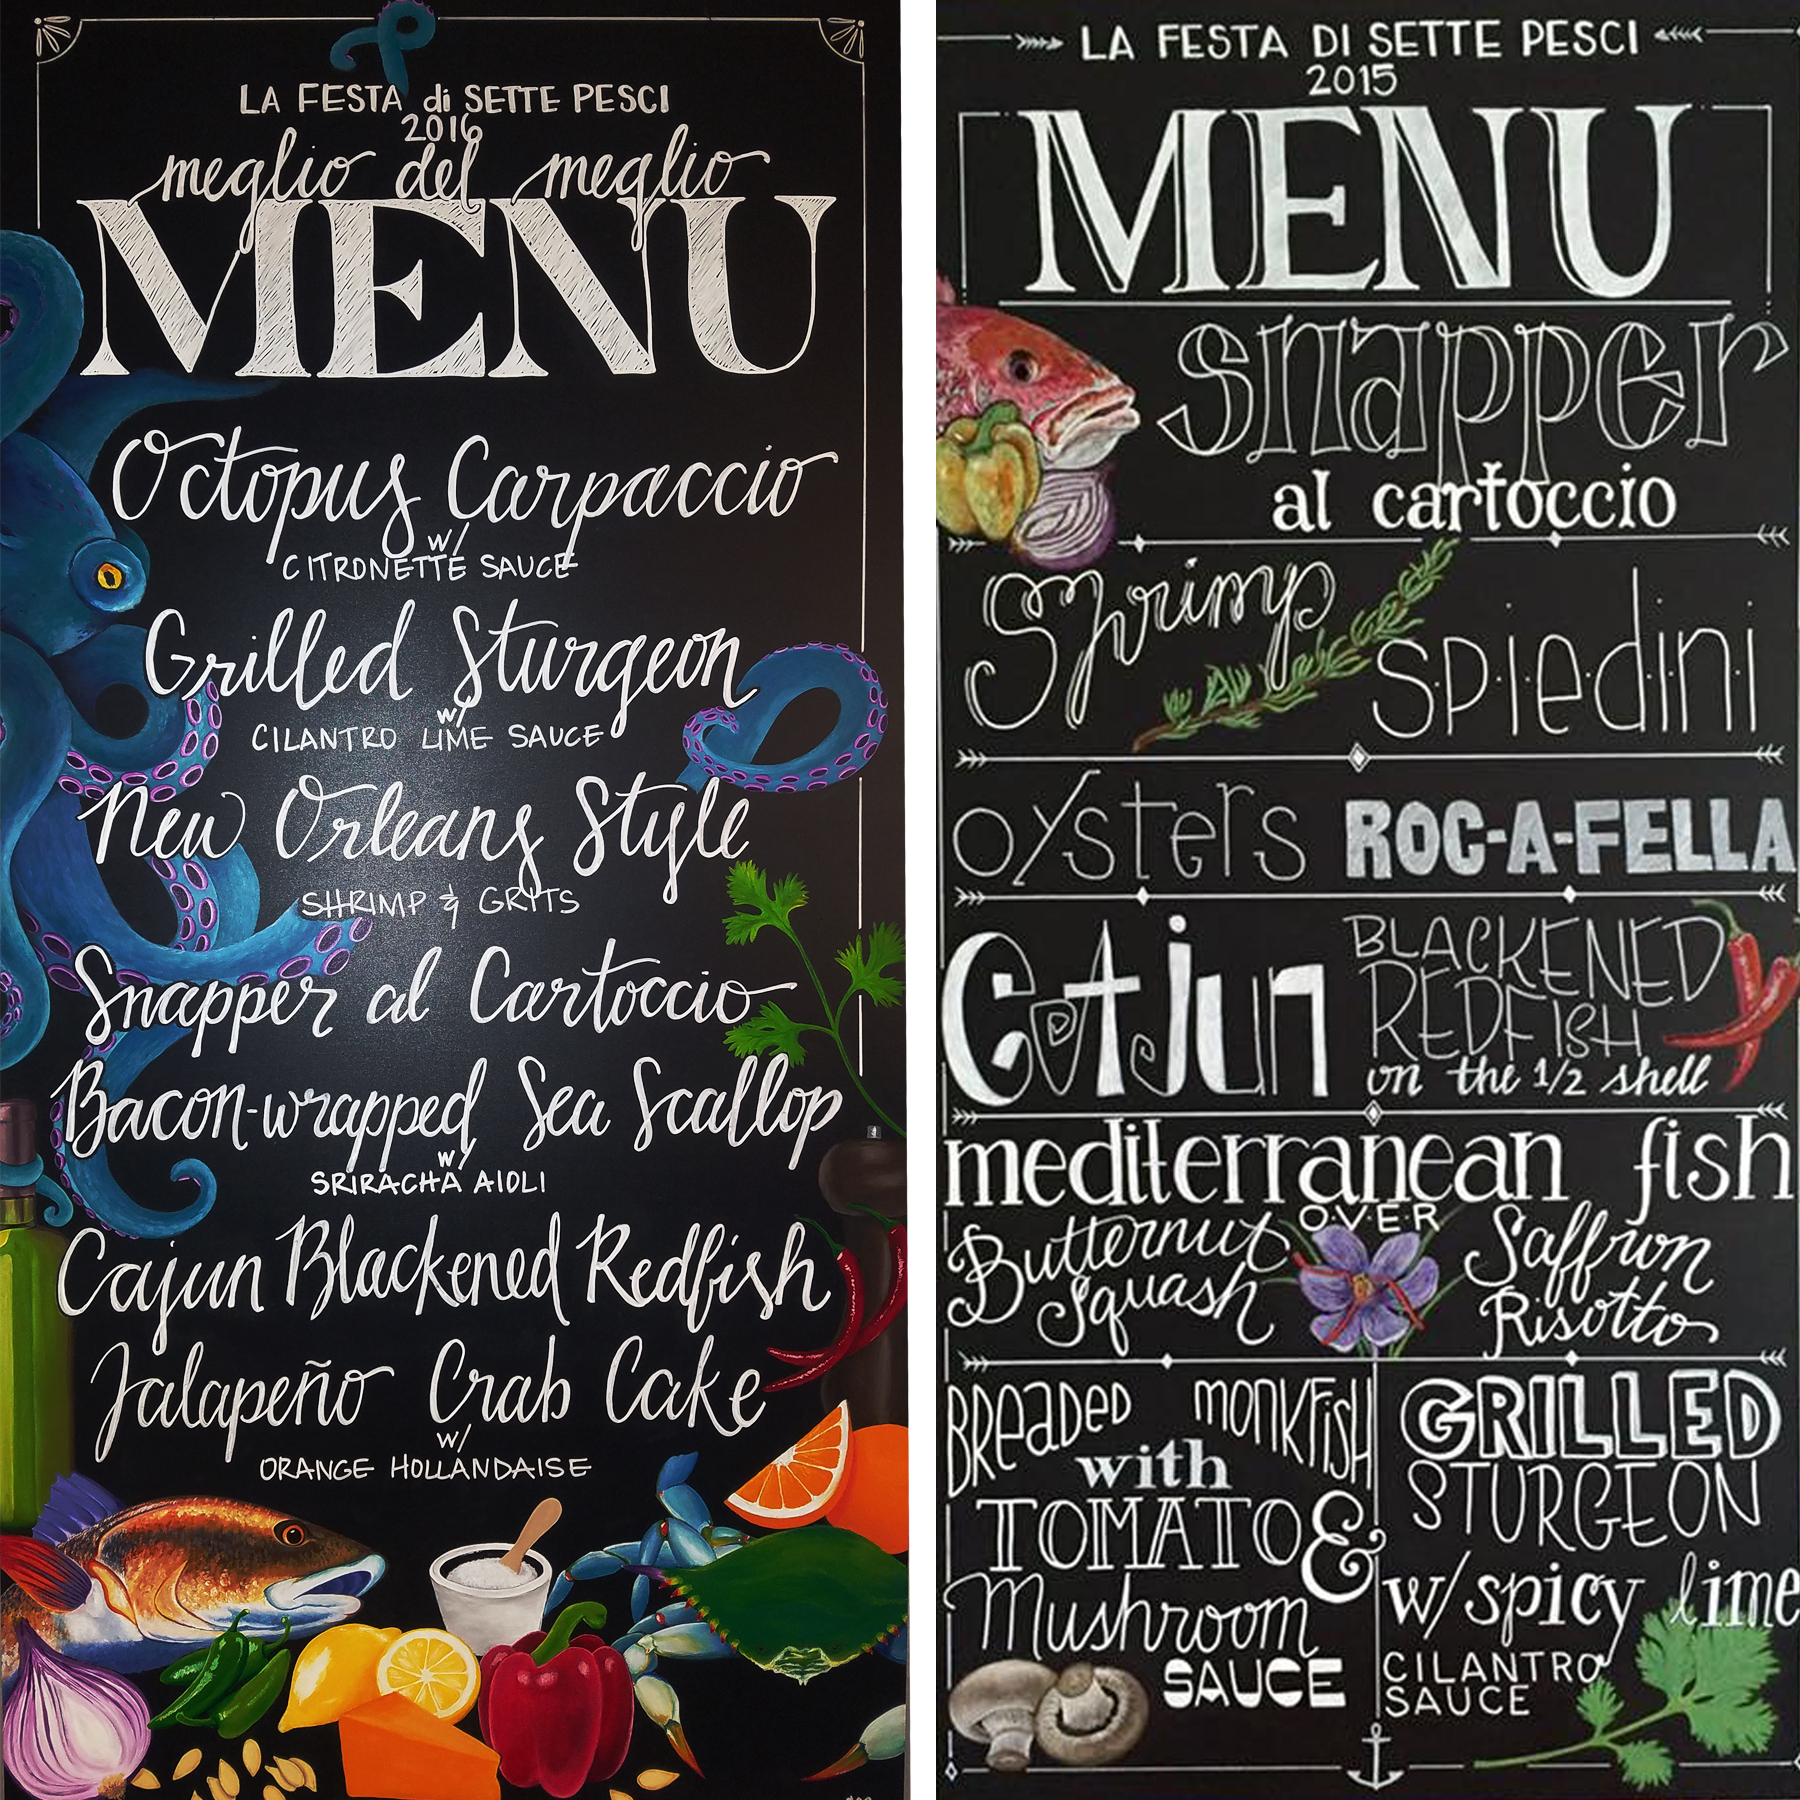 Need a chalkboard menu? - These personalized chalkboard menus were made for us by our dear friend Stacy!  Check out her instagram @thetangledsea.artistry